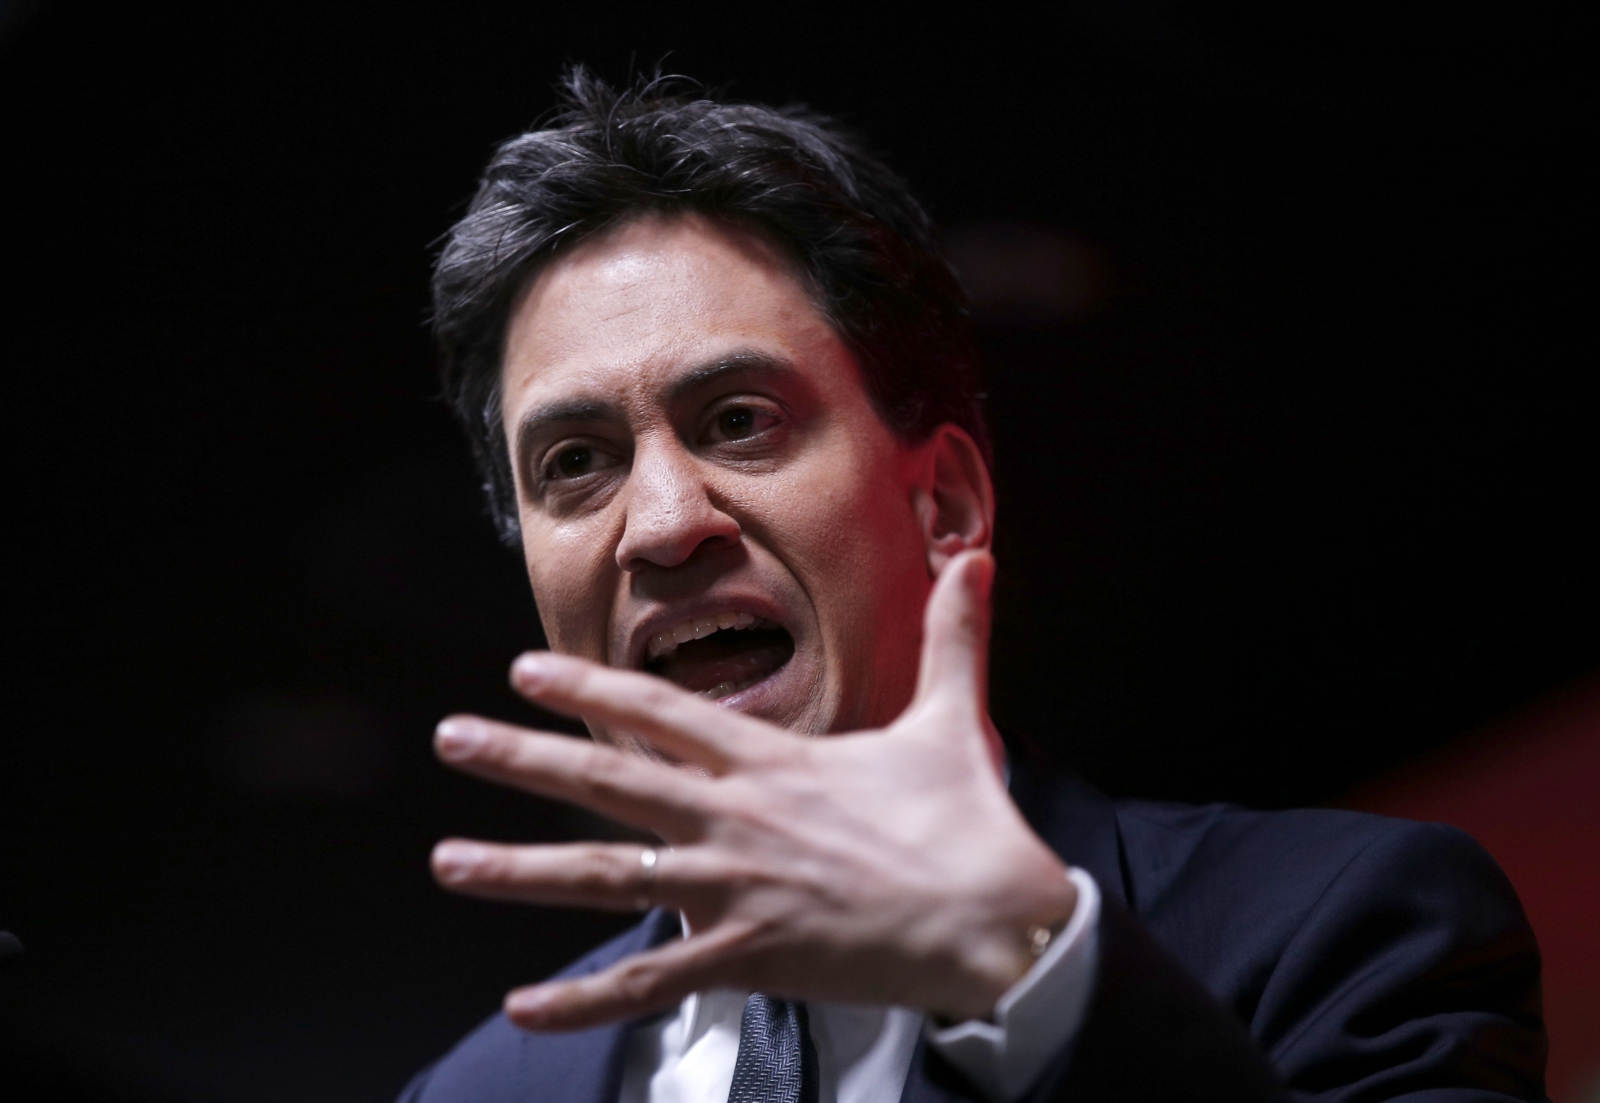 Labour to build new homes